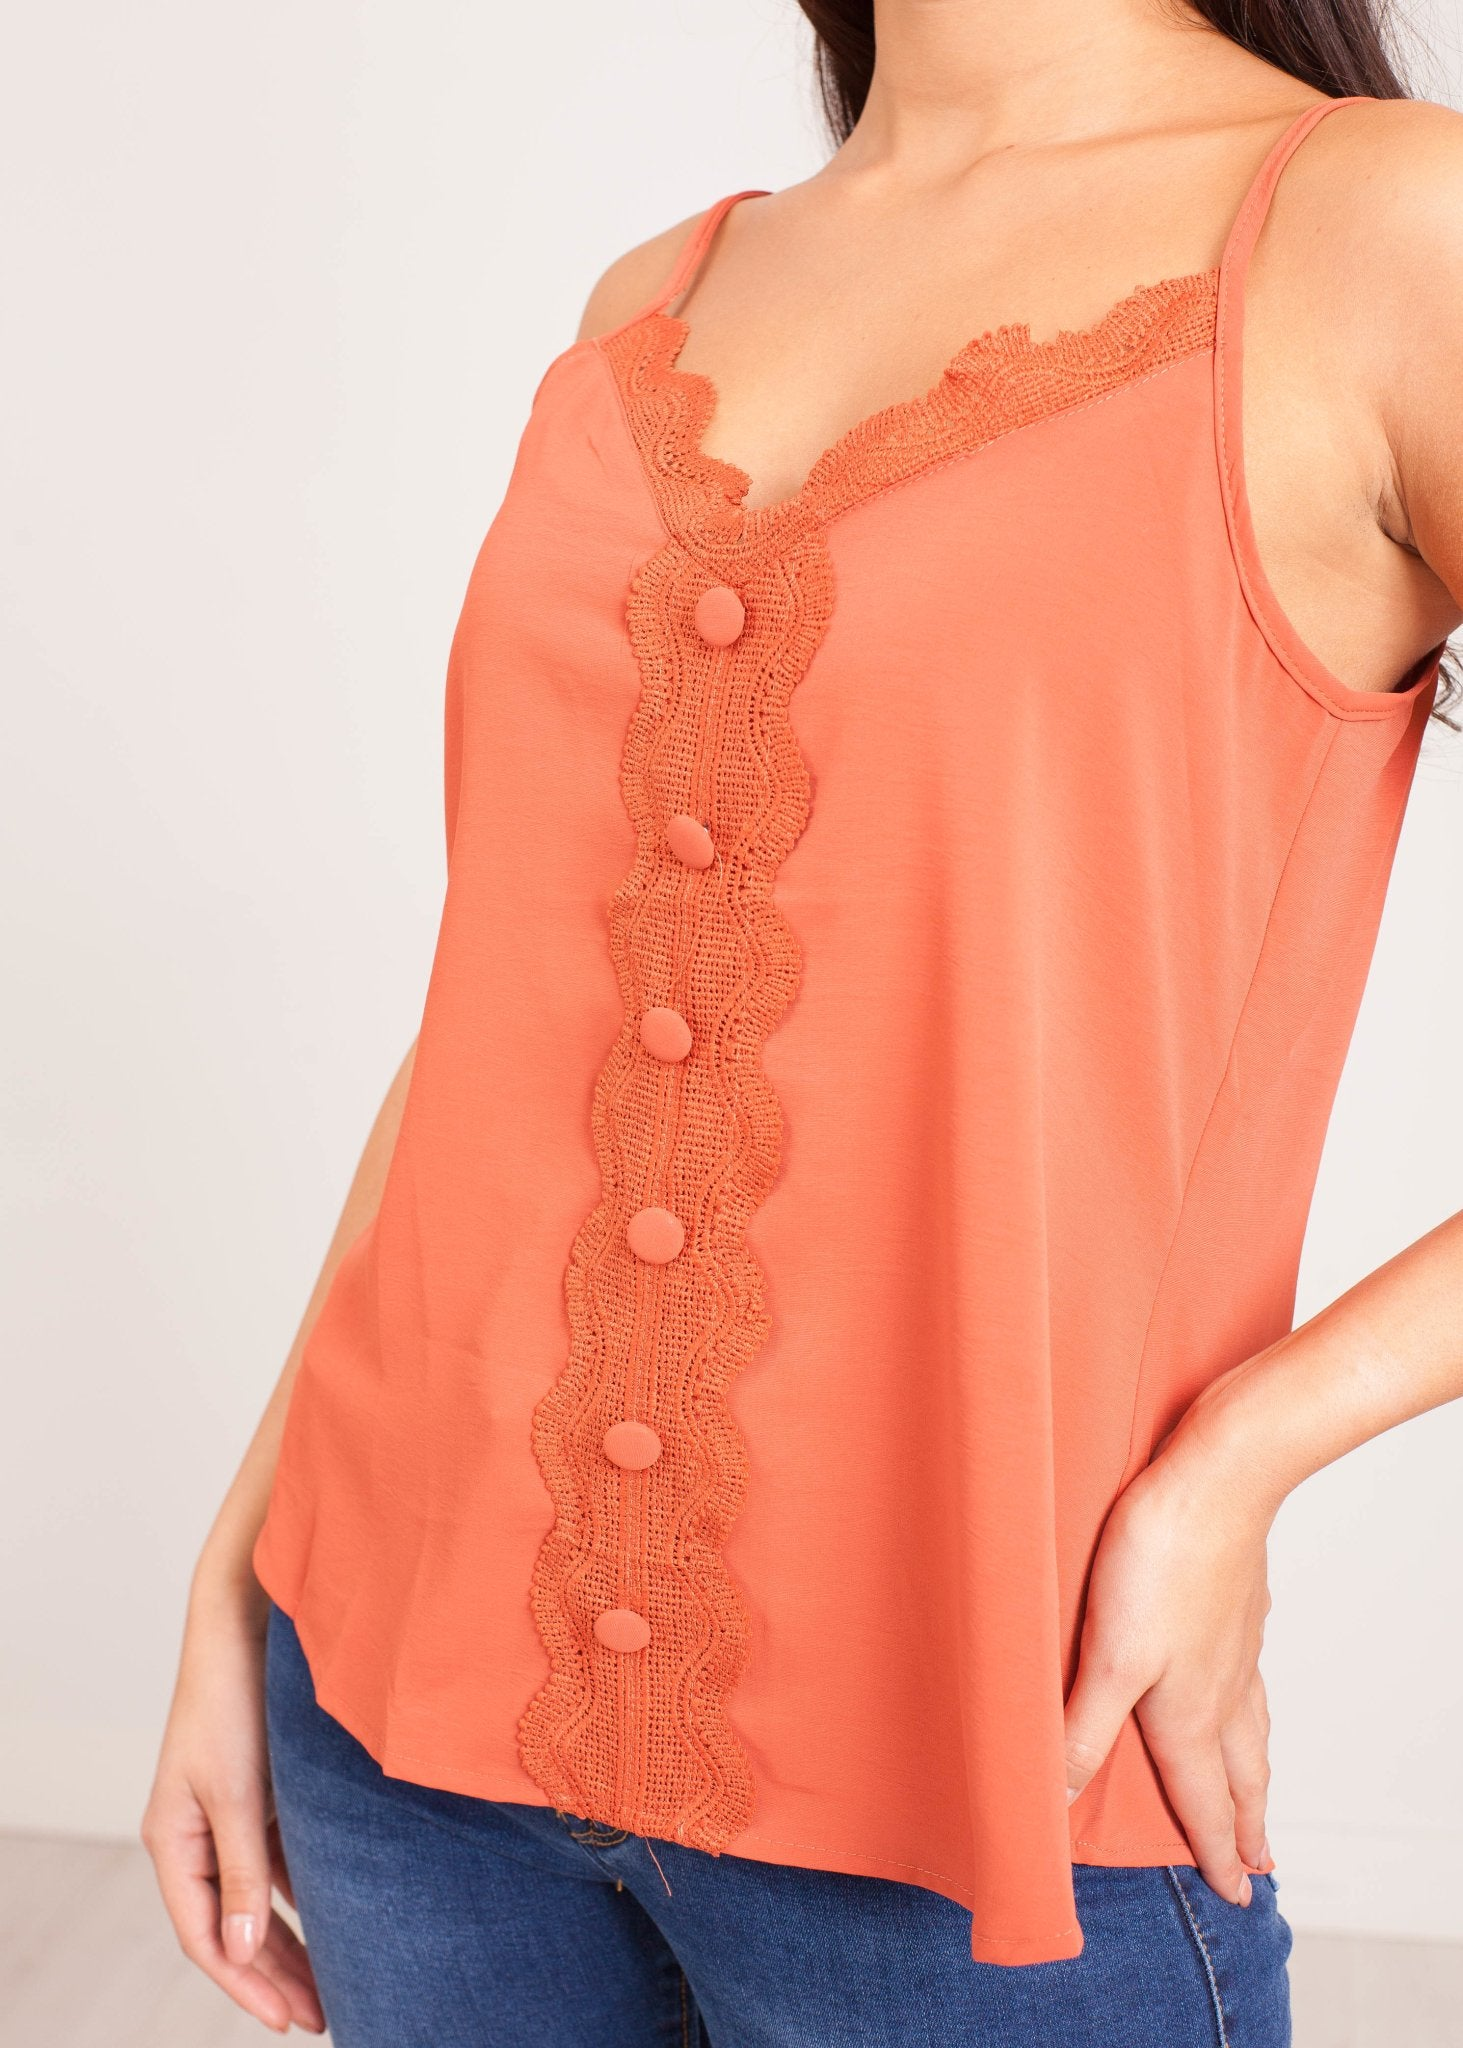 Emilia Rust Lace Cami with Buttons - The Walk in Wardrobe